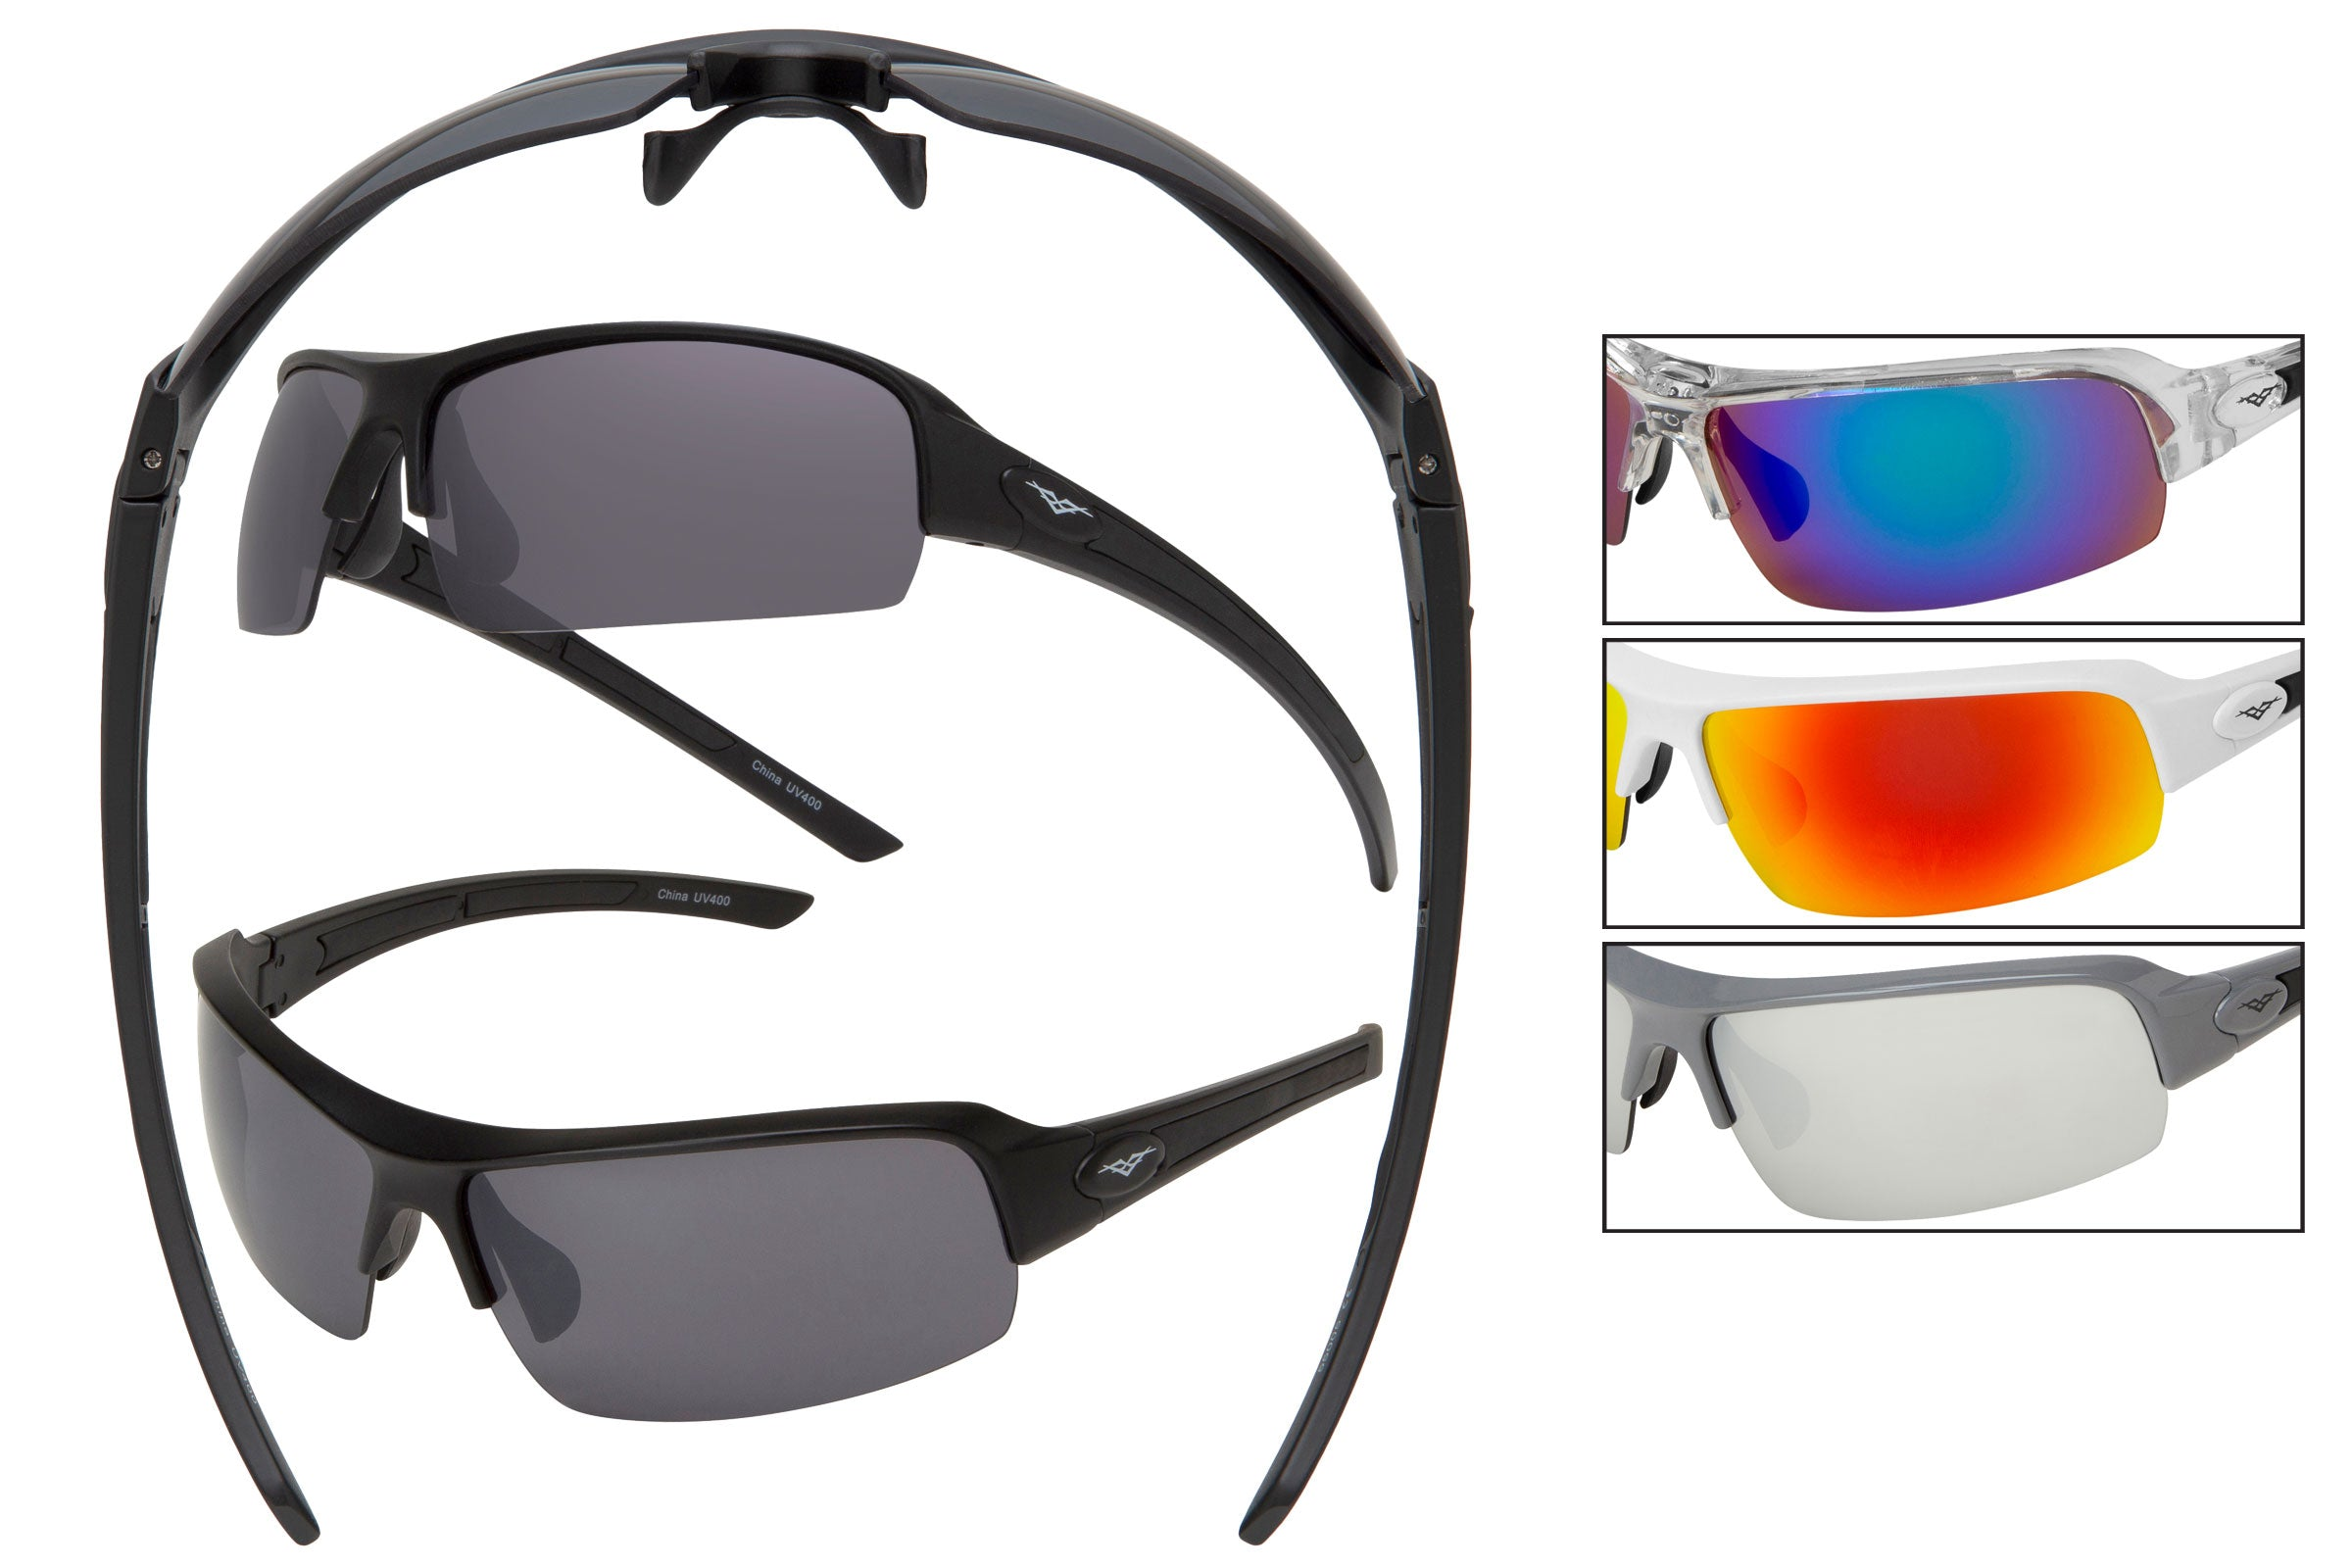 55005 - VertX PC Sport Wrap Sunglasses